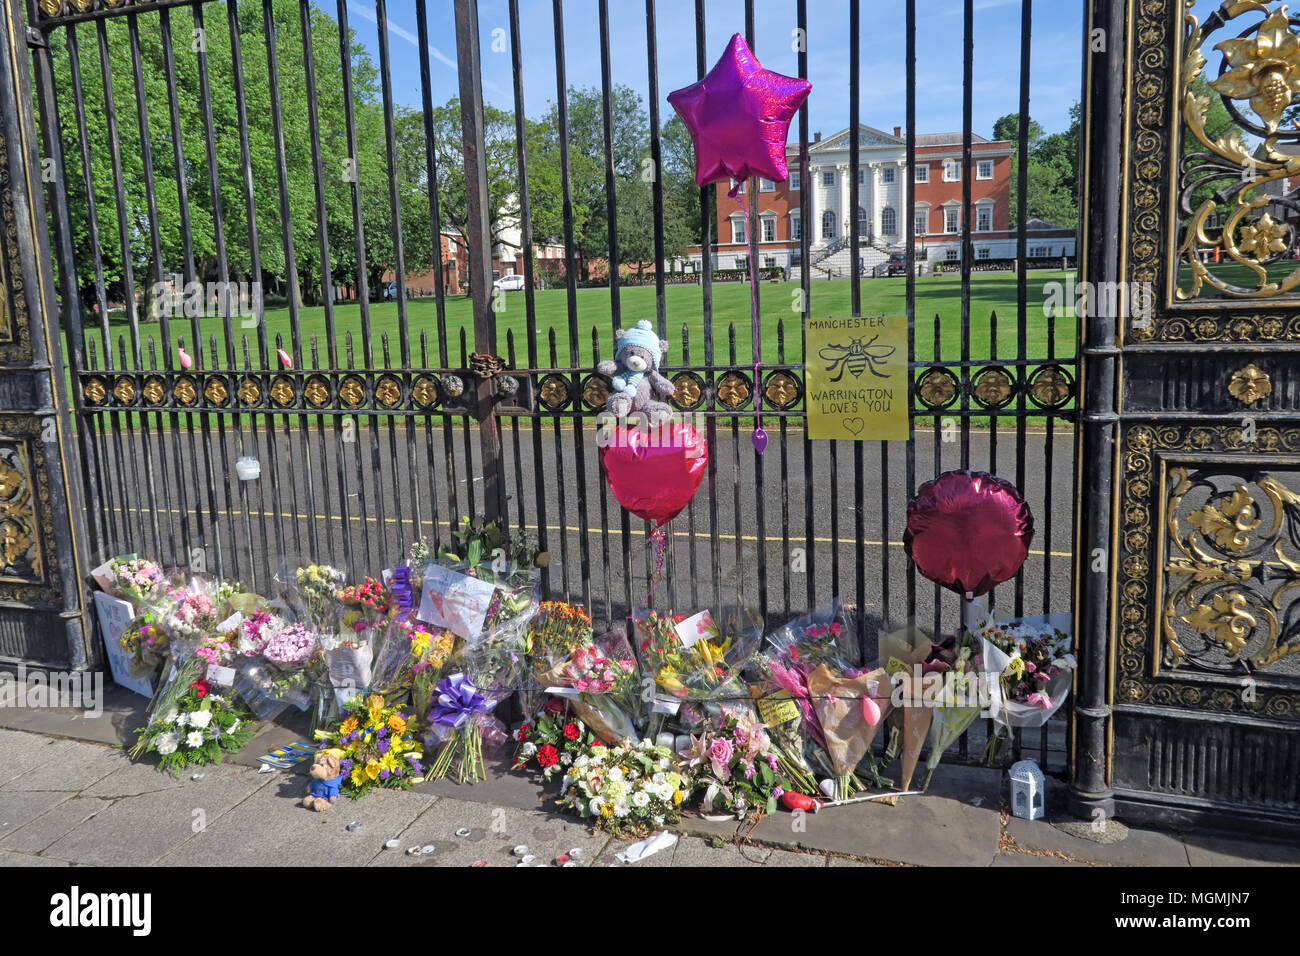 Golden Gates Sankey St Warrington after Manchester Bombing 2017 - Stock Image